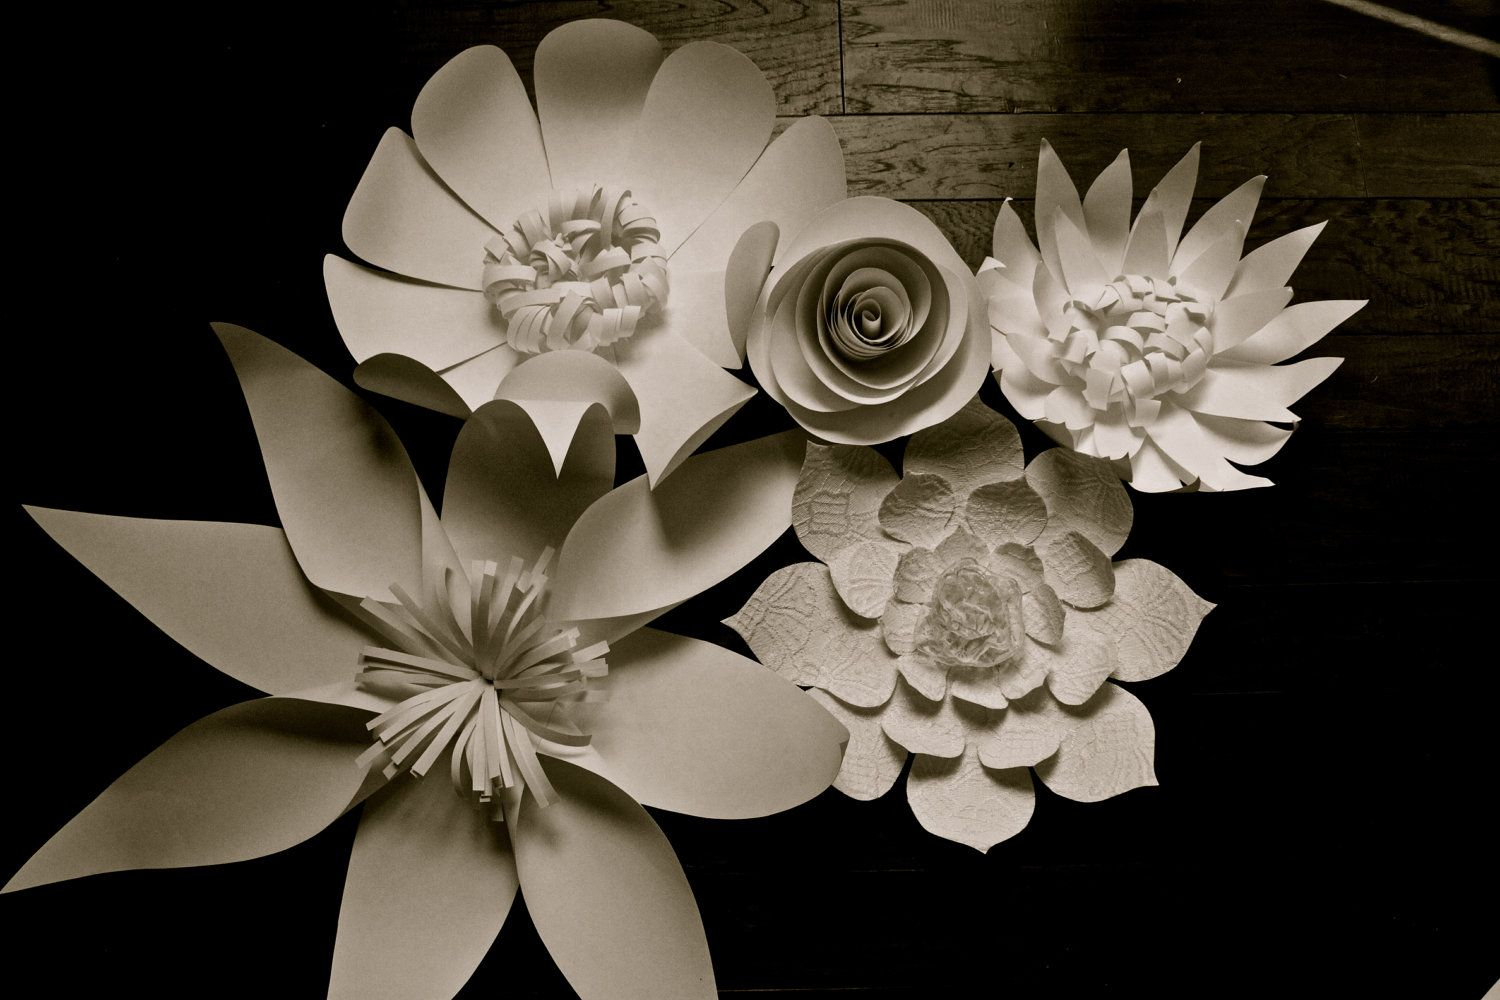 This Listing Is For A Set Of 5 Paper Flowers In White Or Ivory With